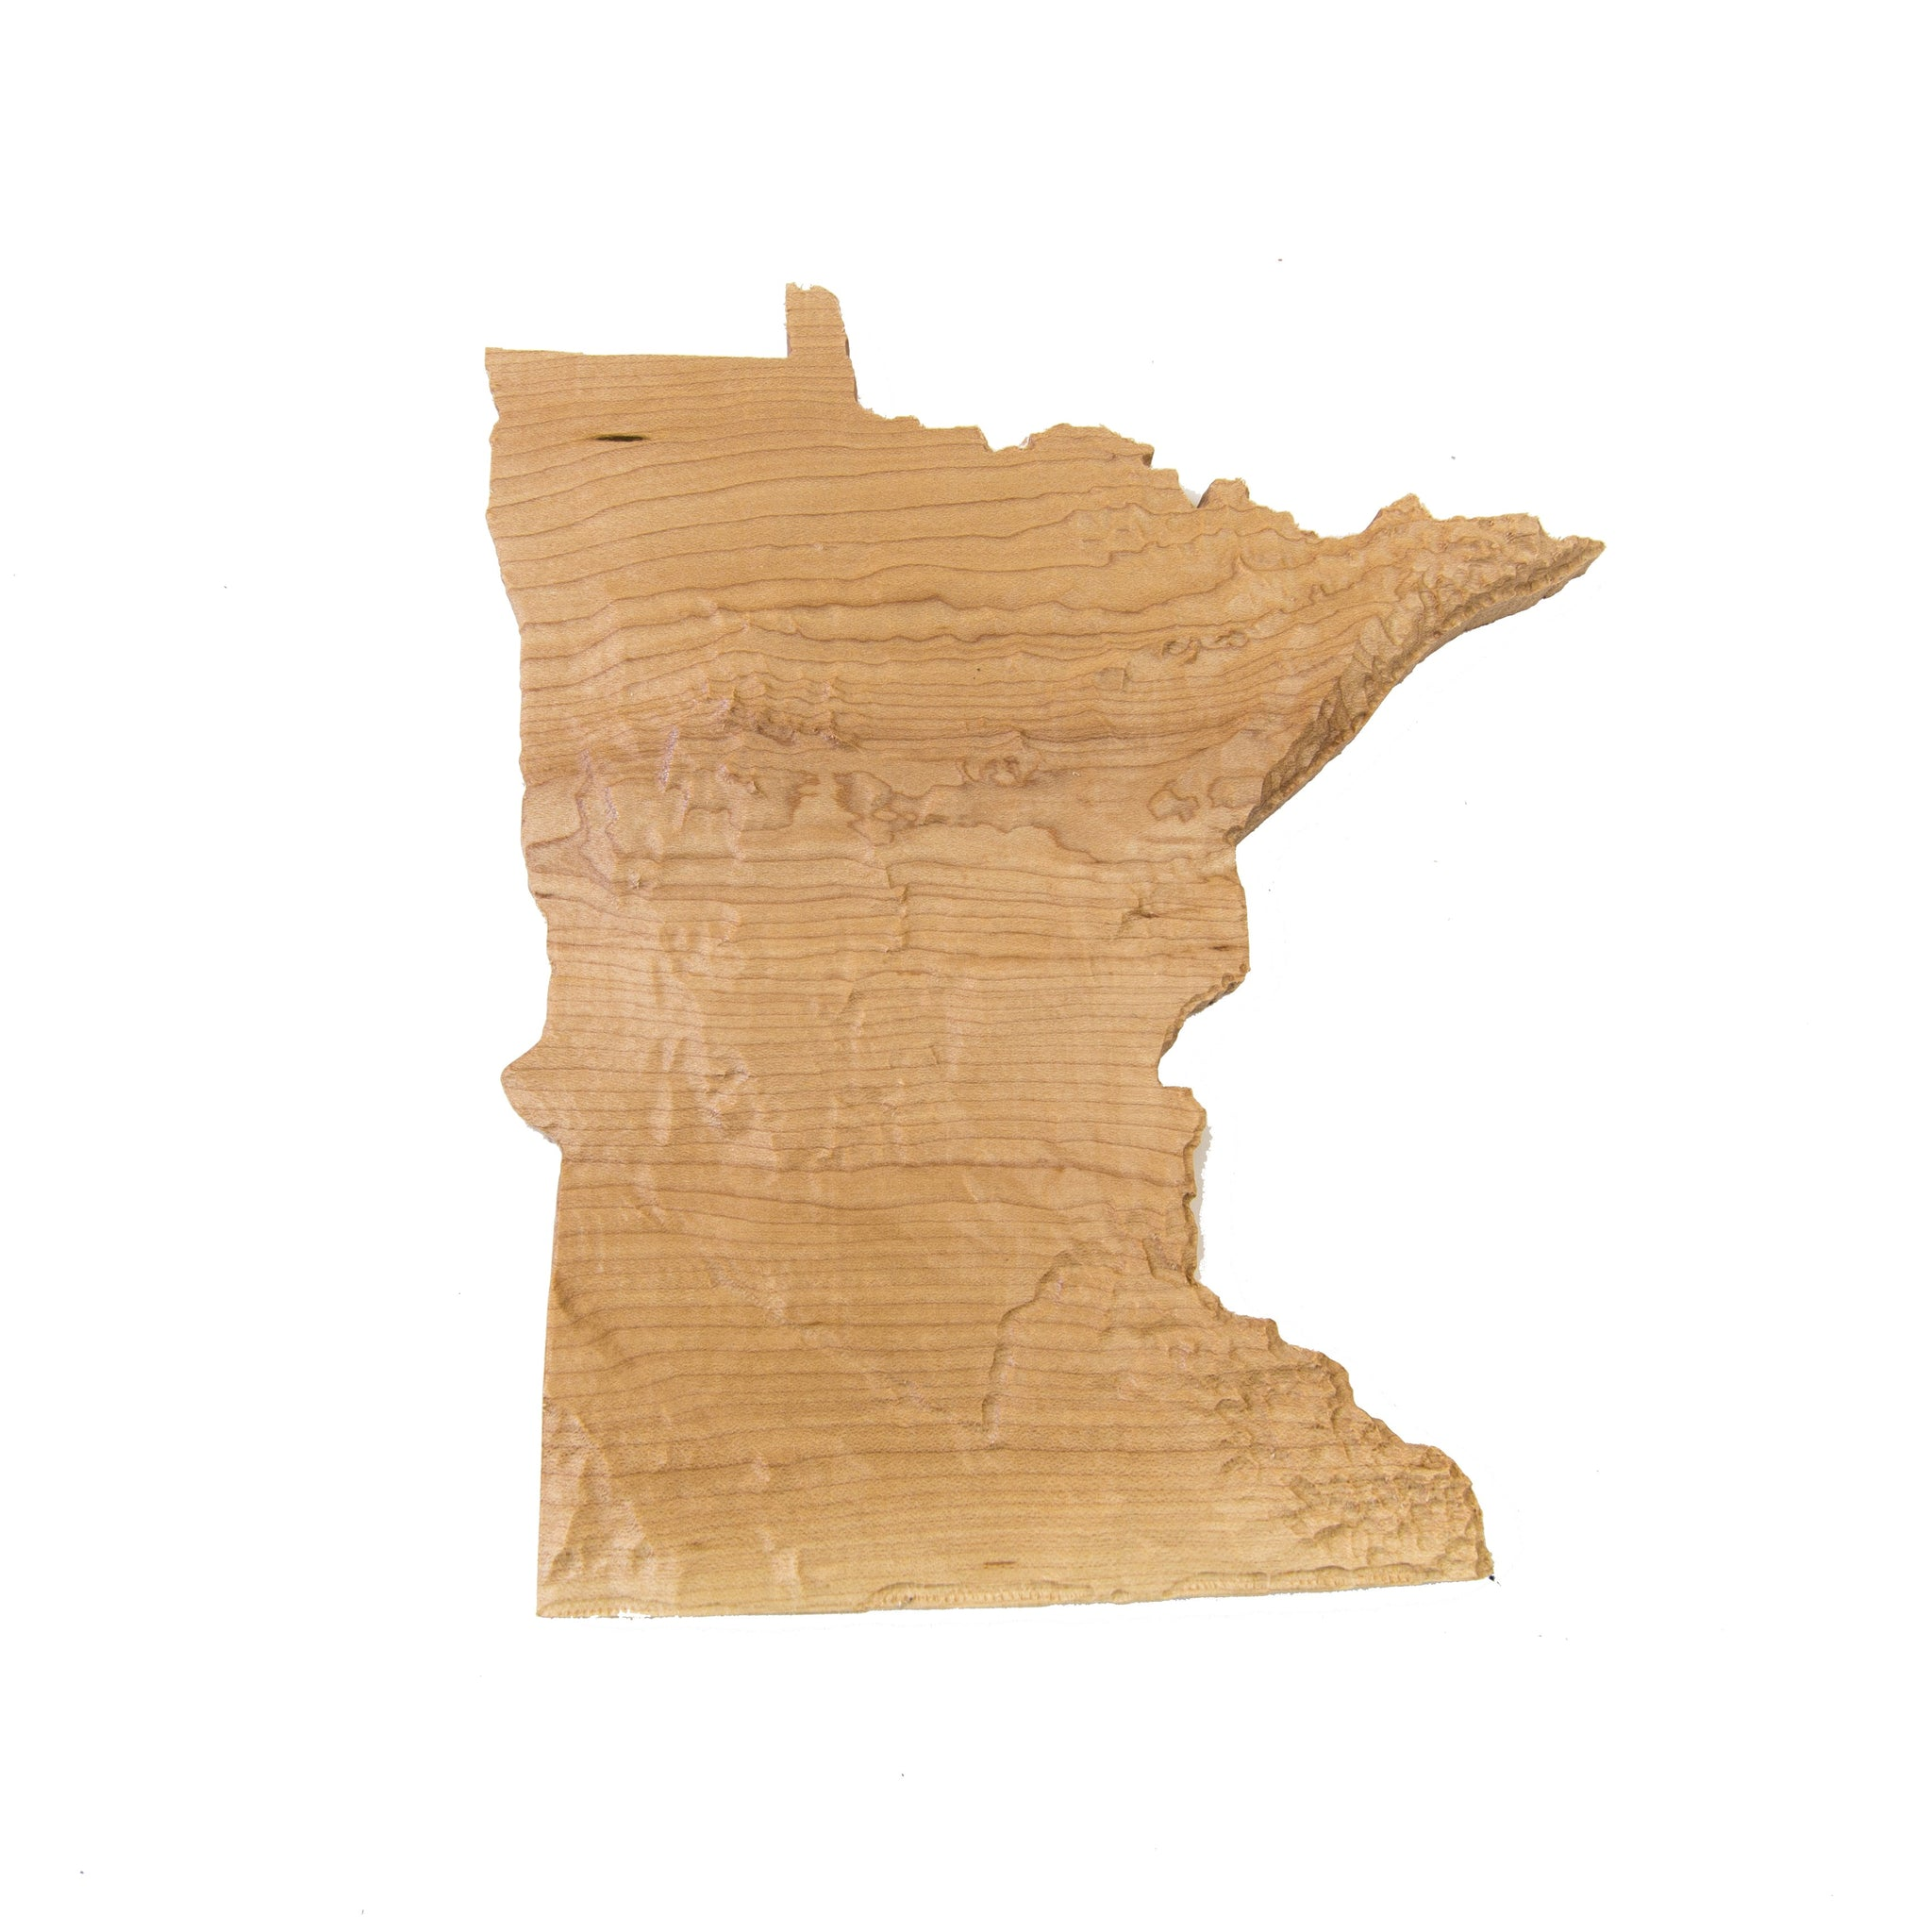 Wooden topographic map of Minnesota – Elevated Woodworking